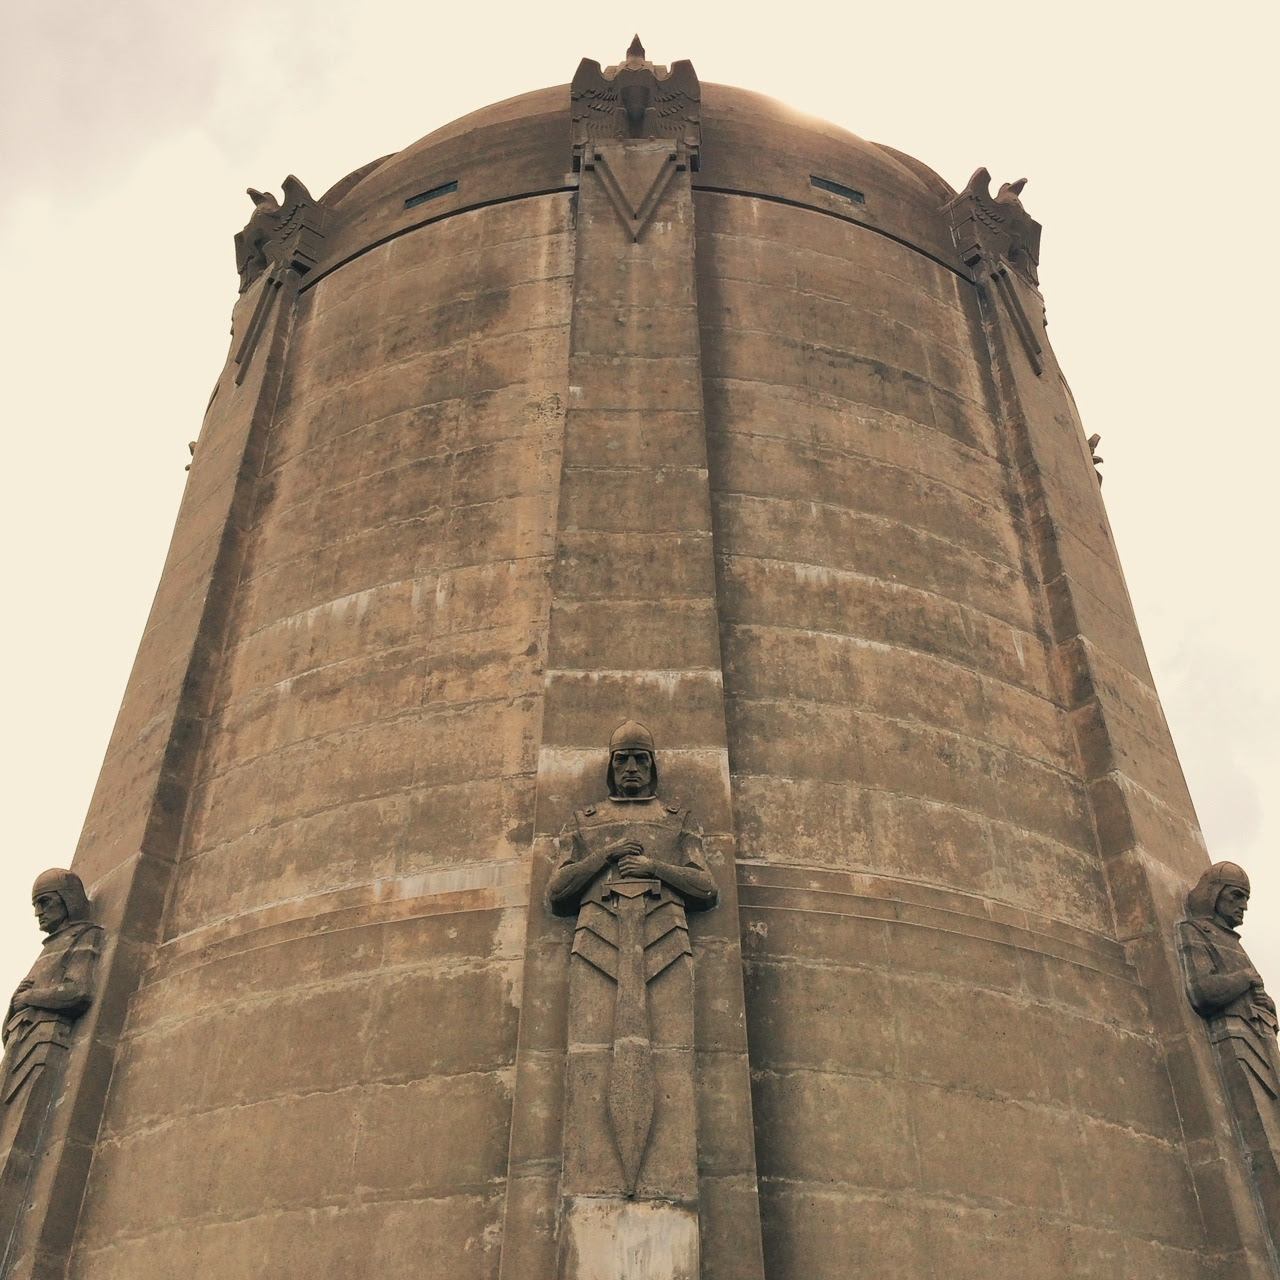 http://scttdvd.com/post/89689734792/the-washburn-park-water-tower